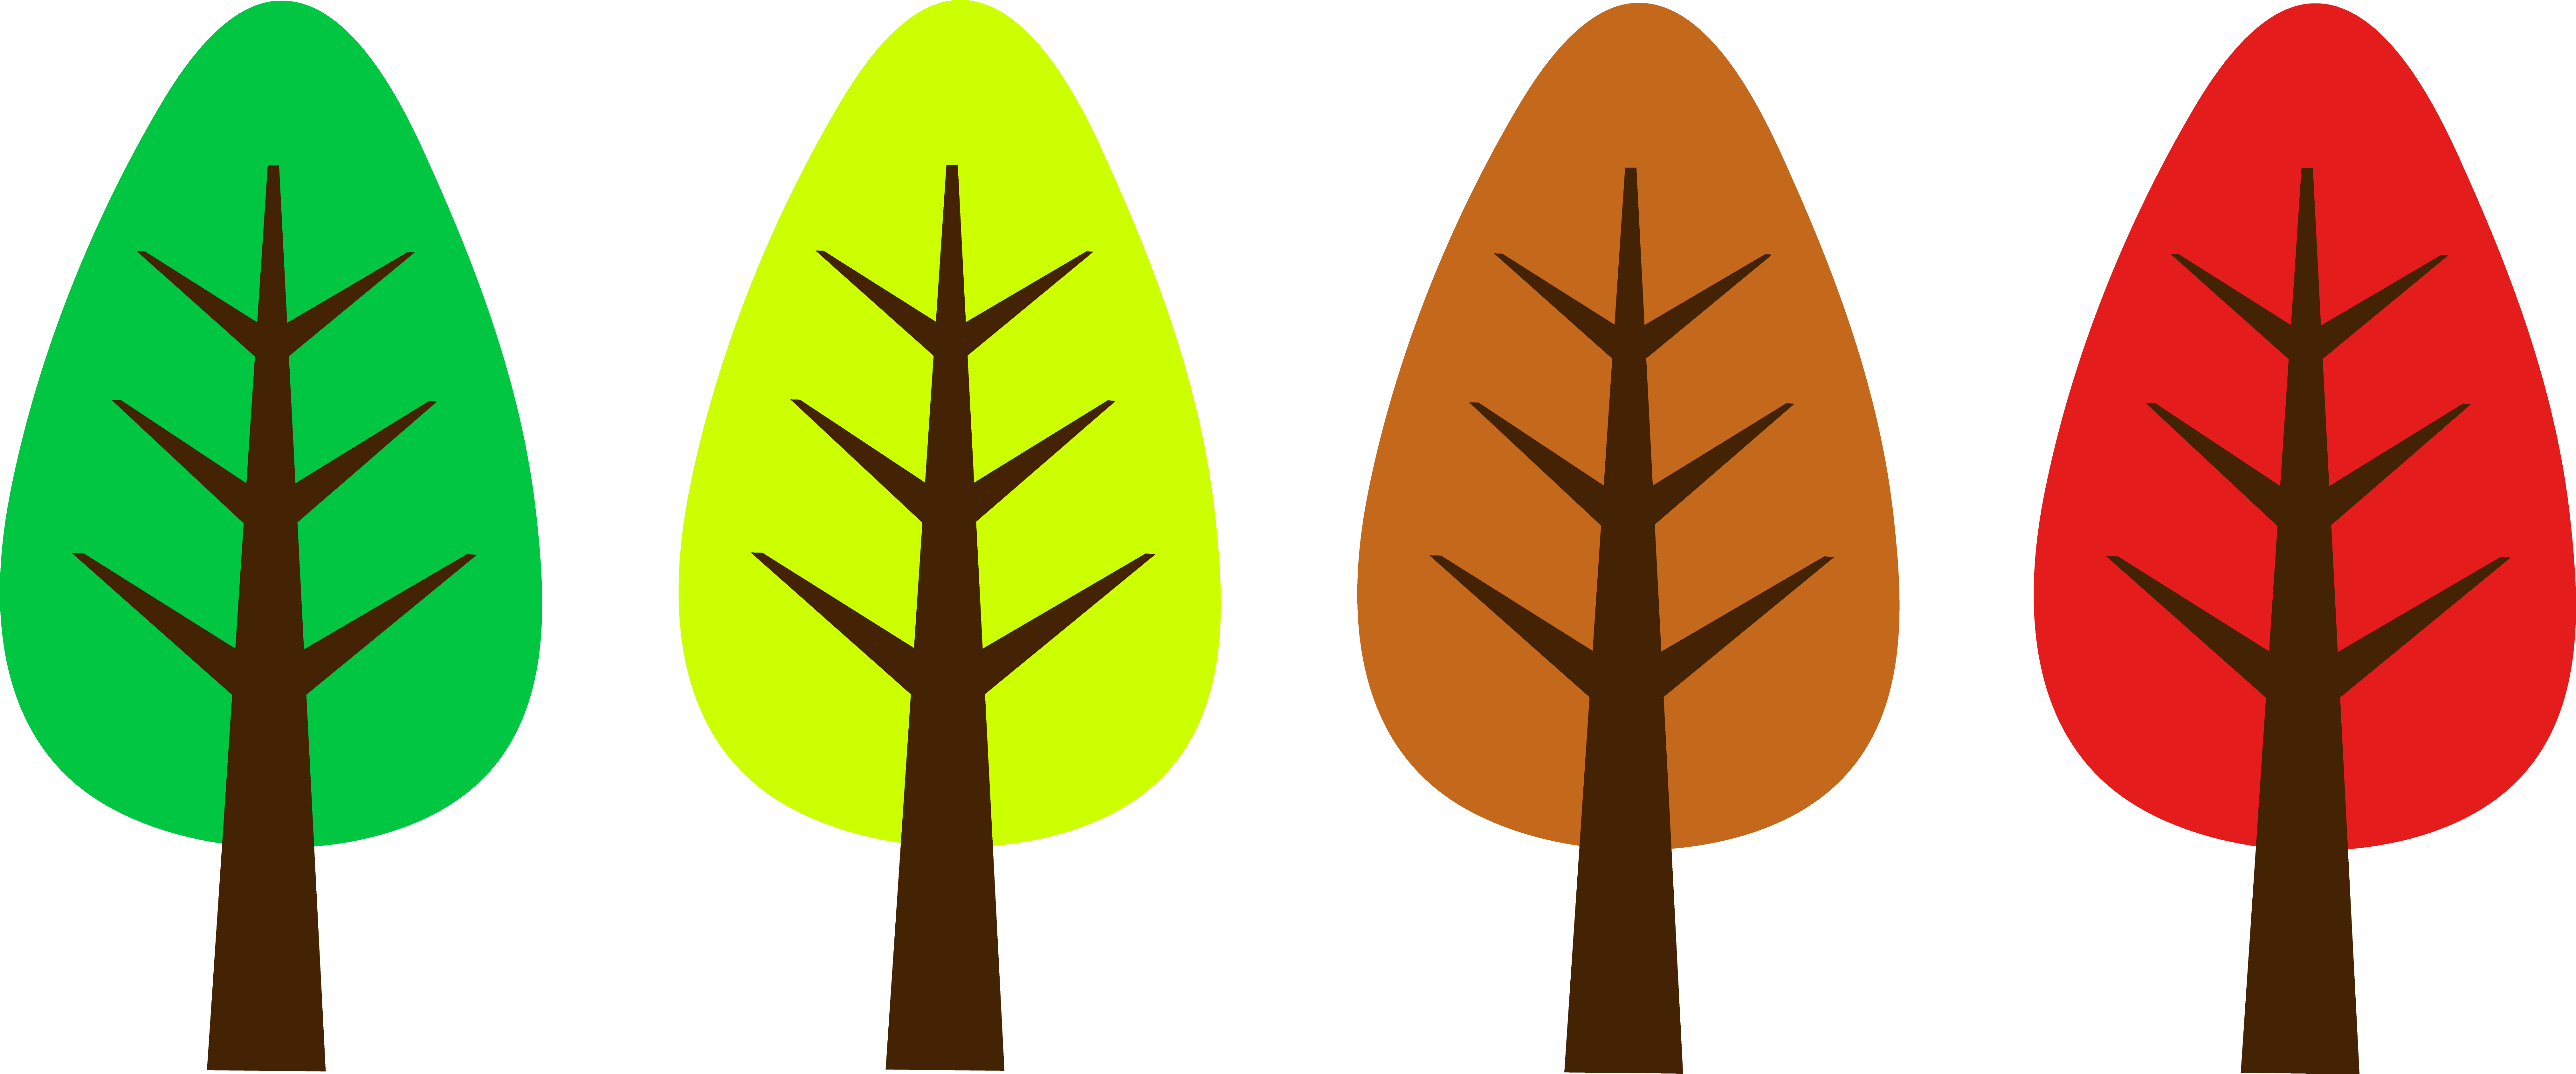 Fall Trees Clip Art - ClipArt Best